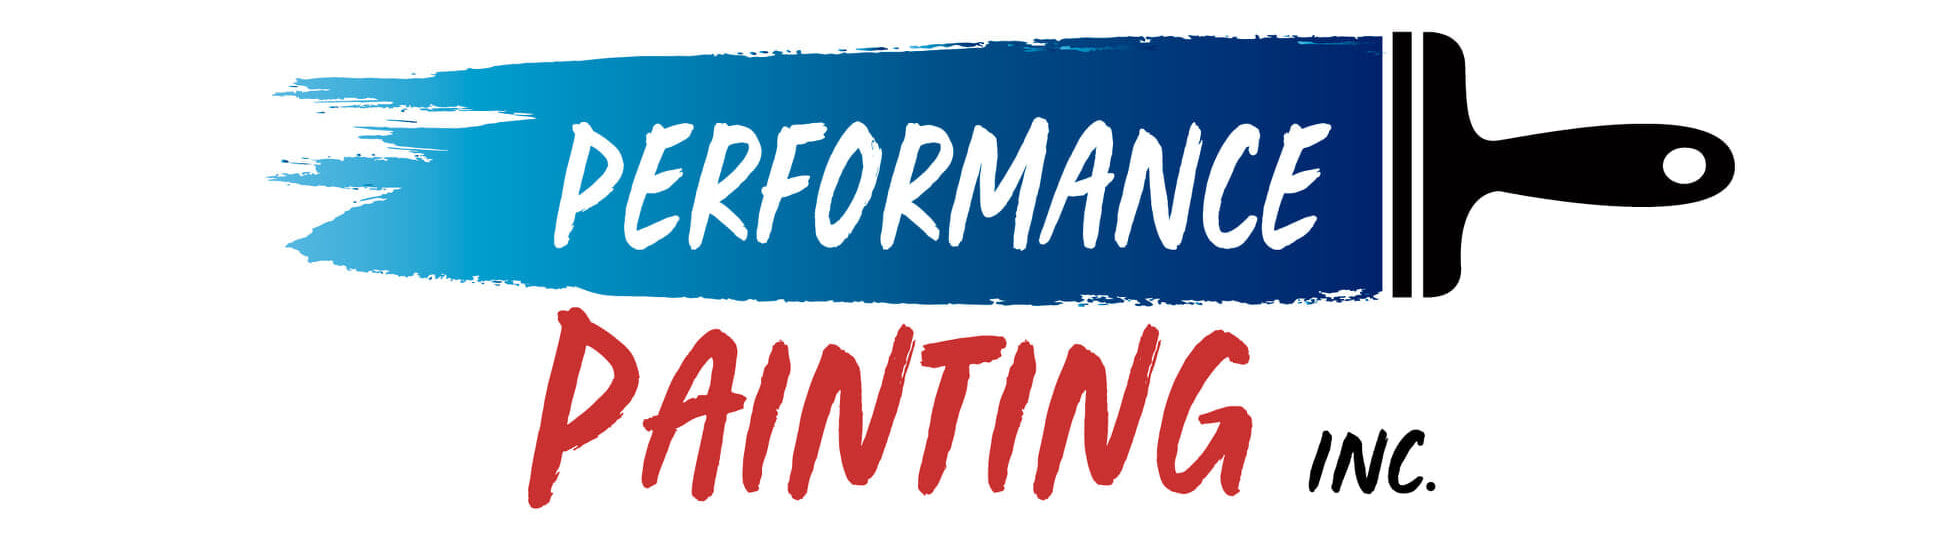 Performance Painting, Inc.